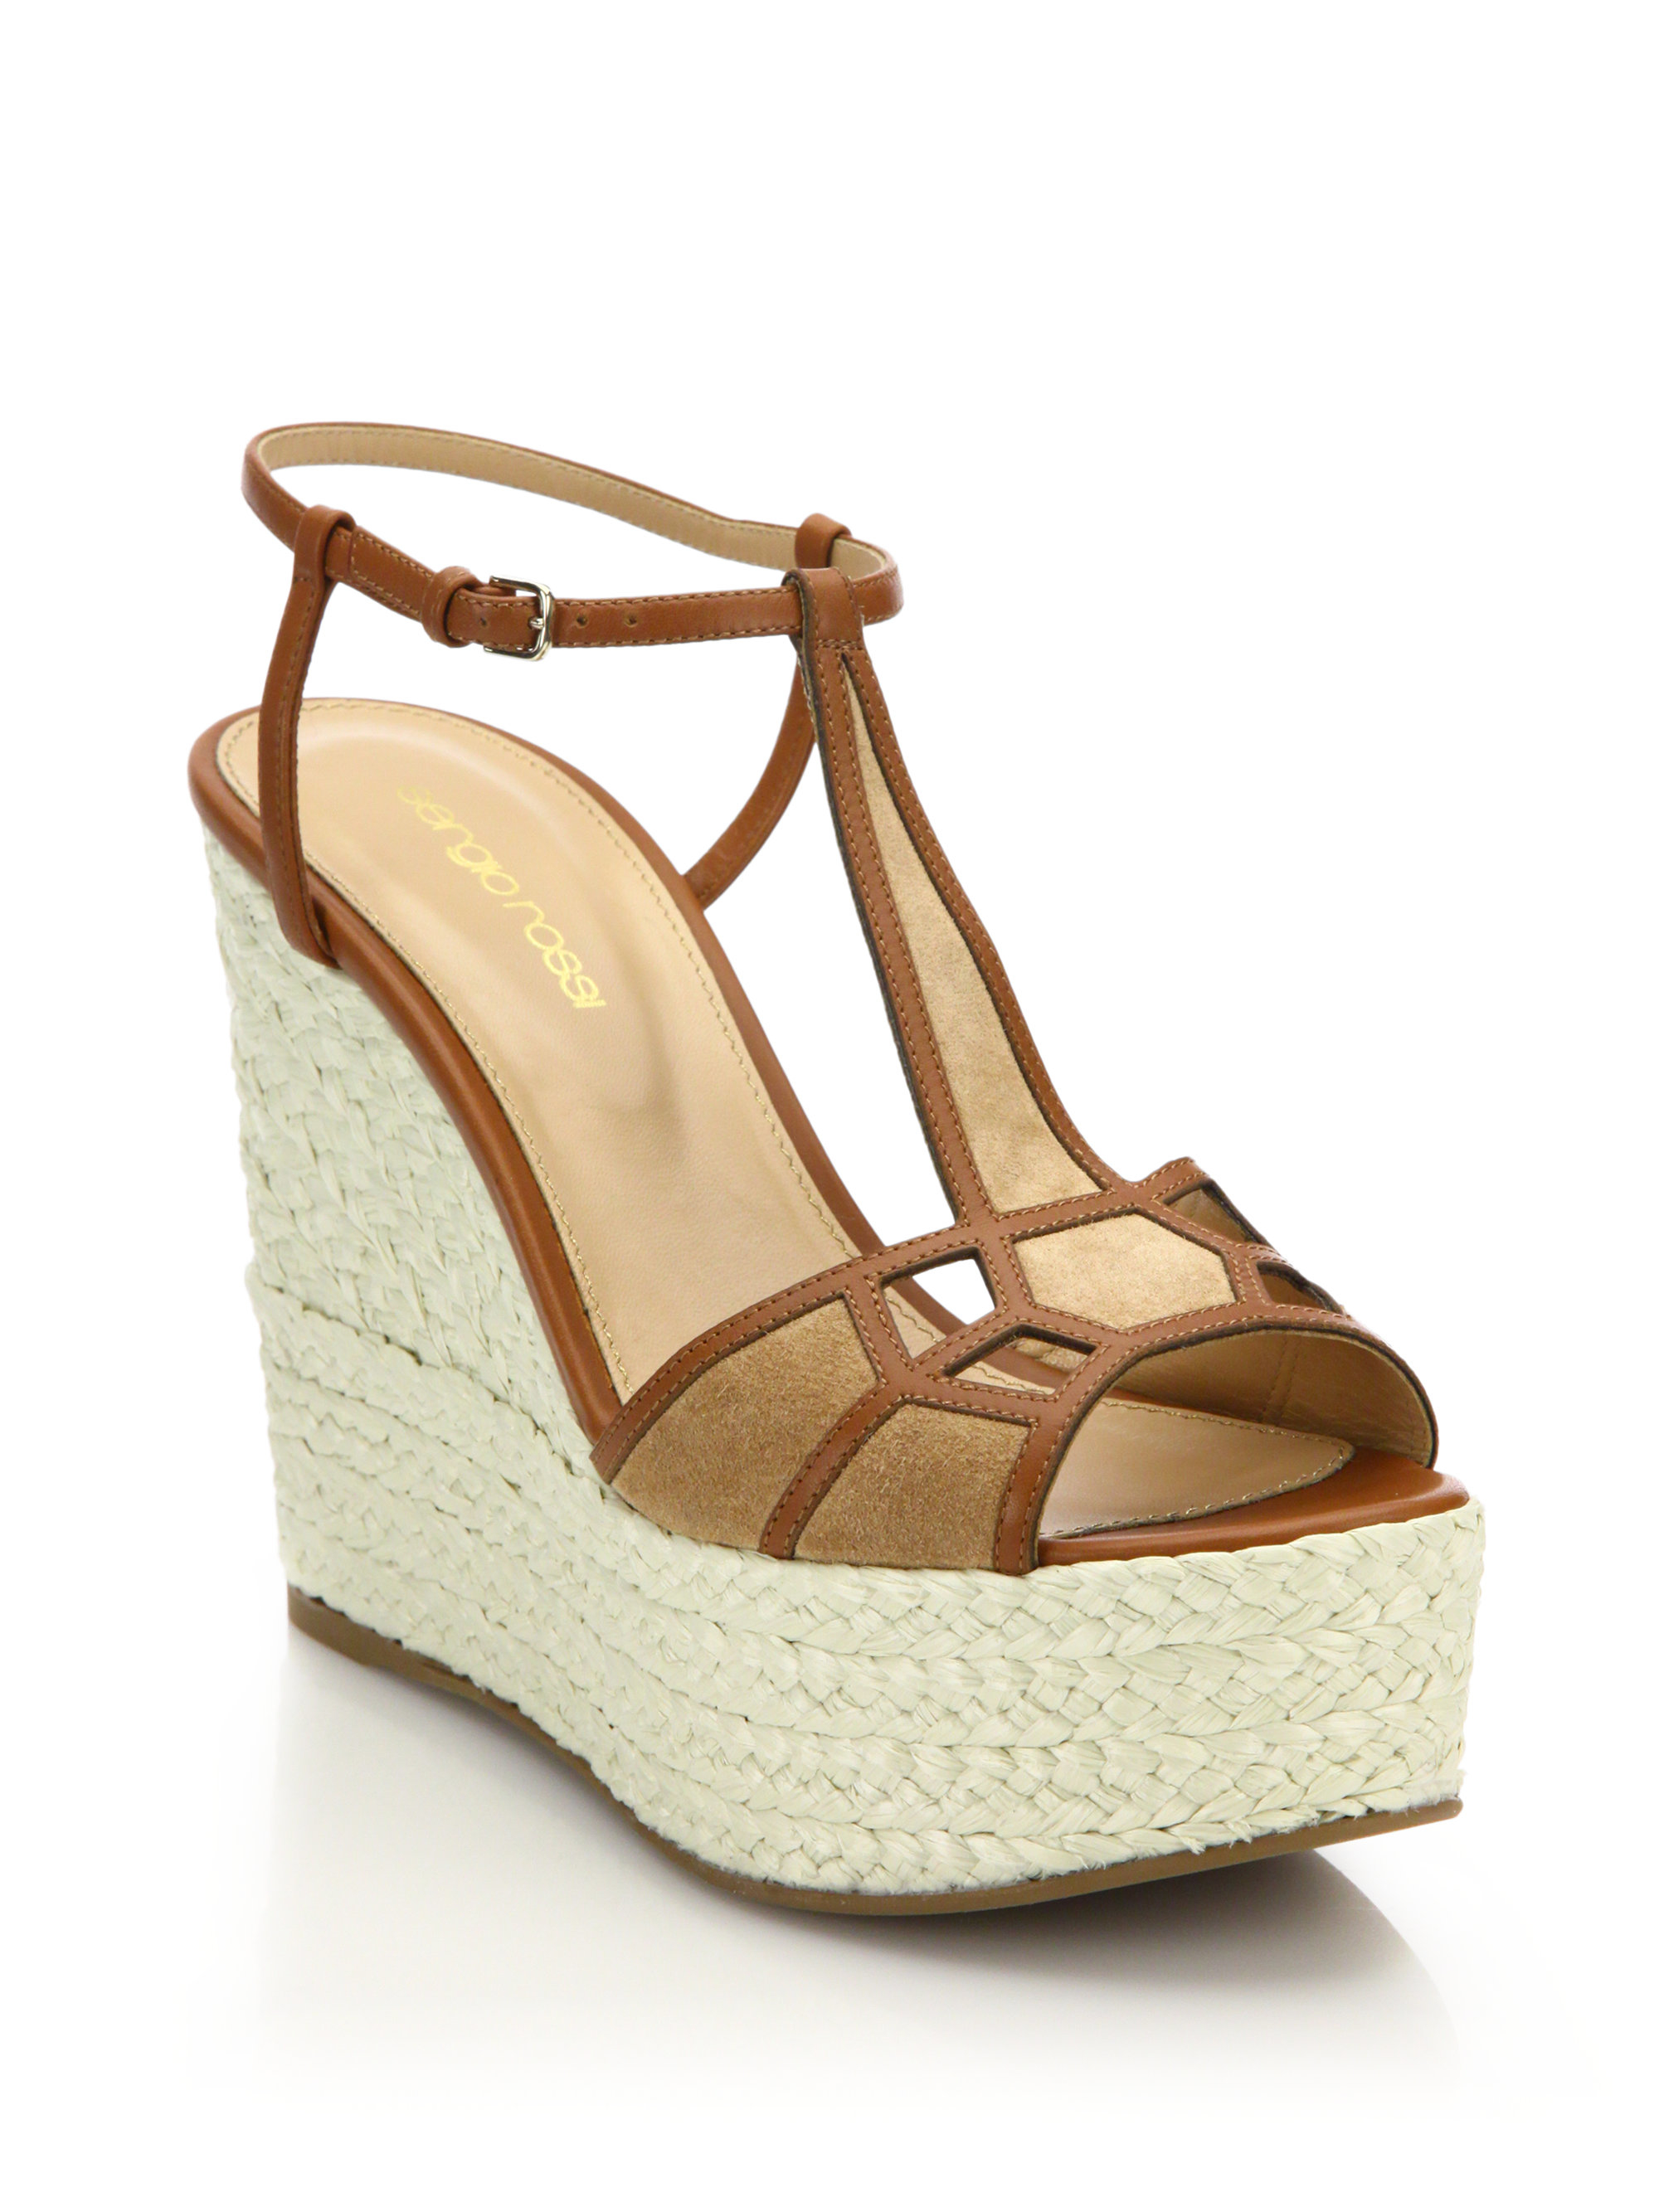 Sergio Rossi Platform sandals smooth leather suede white GsolcZ